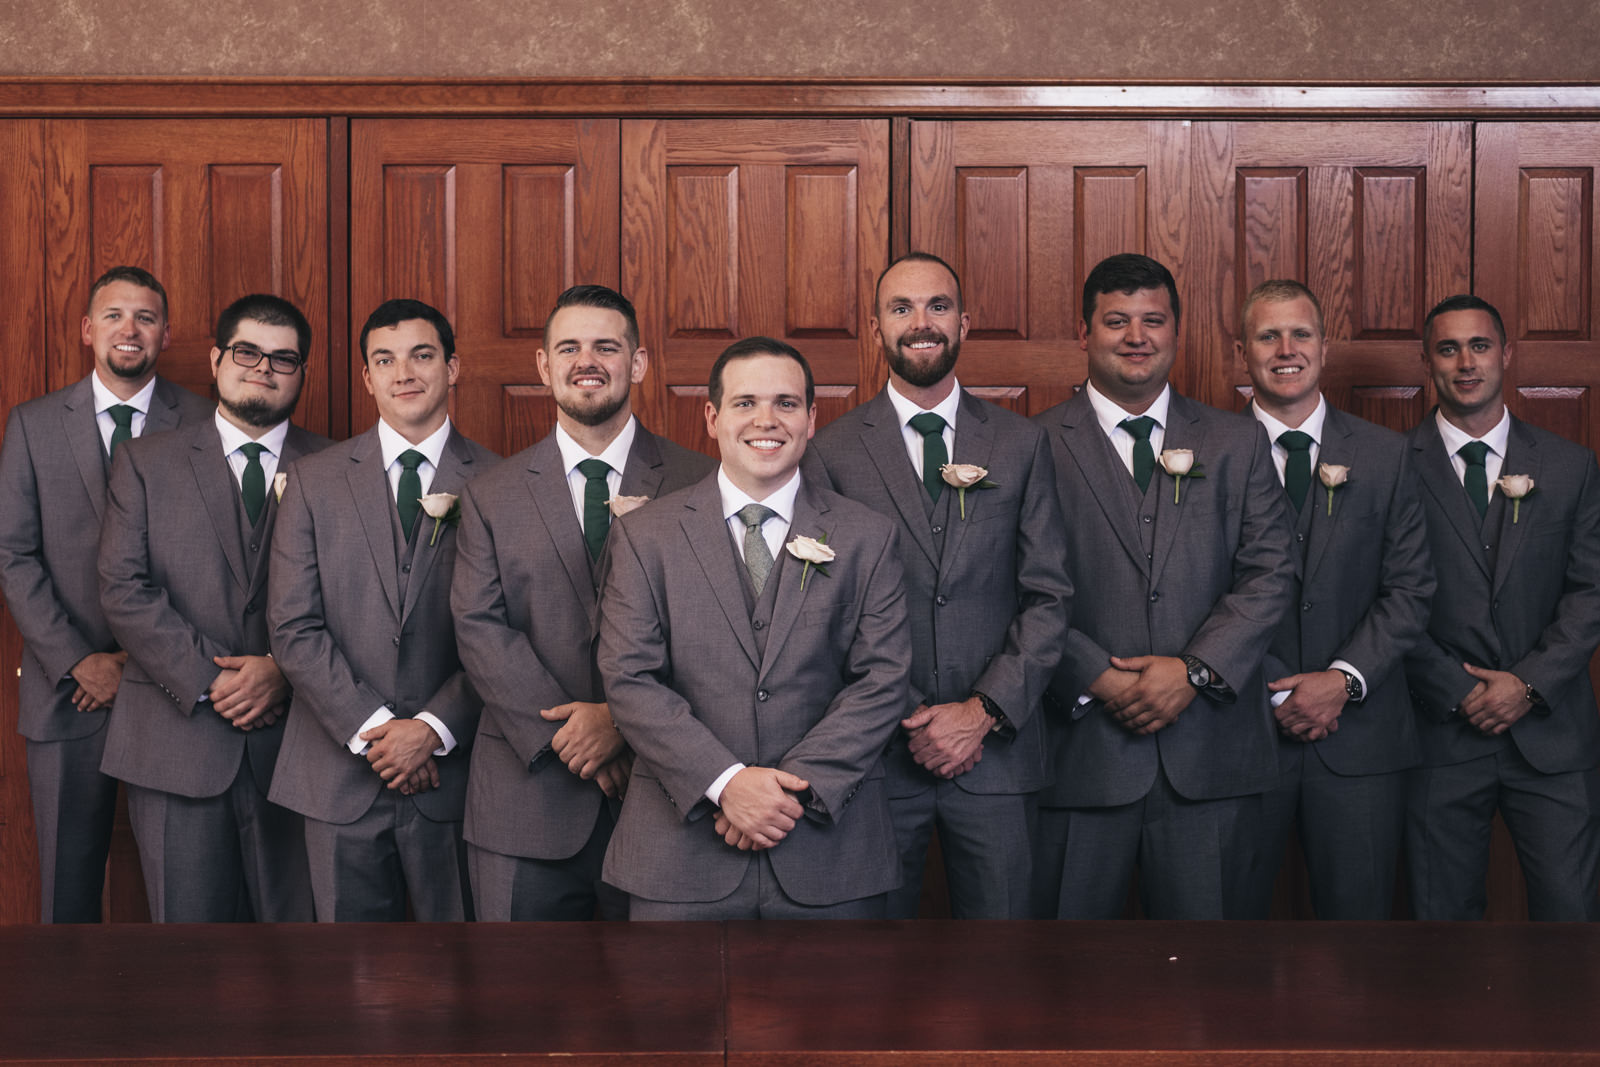 Groomsmen stand at the Toledo Zoo for pictures with the groom before the wedding ceremony